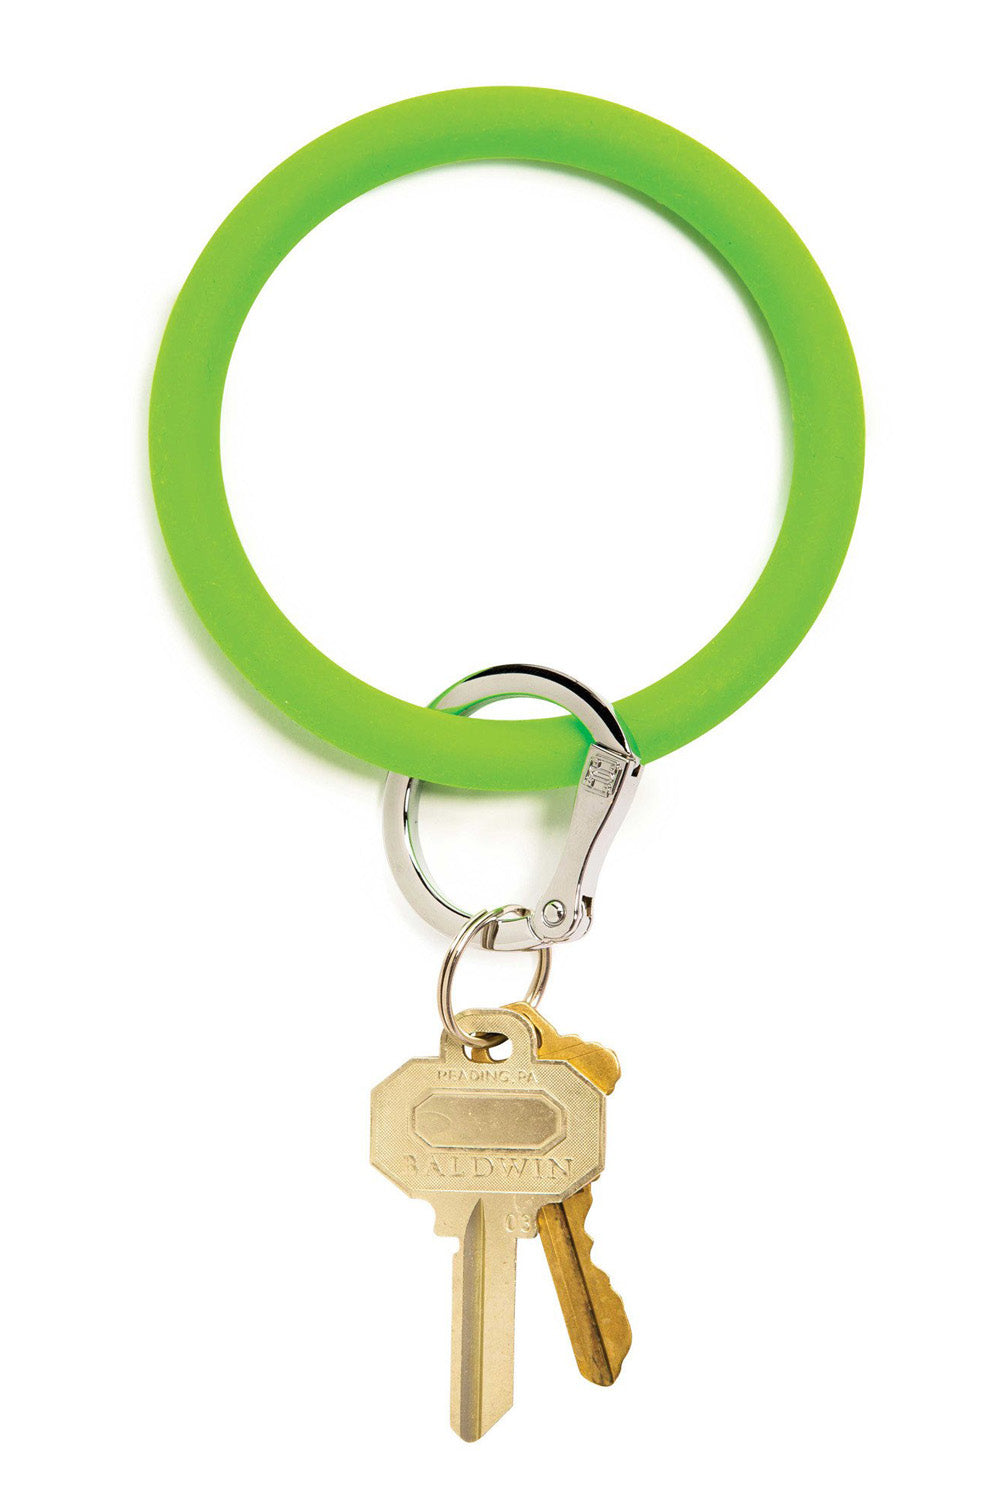 The BIG O Key Ring *Silicone* - In the Grass Green